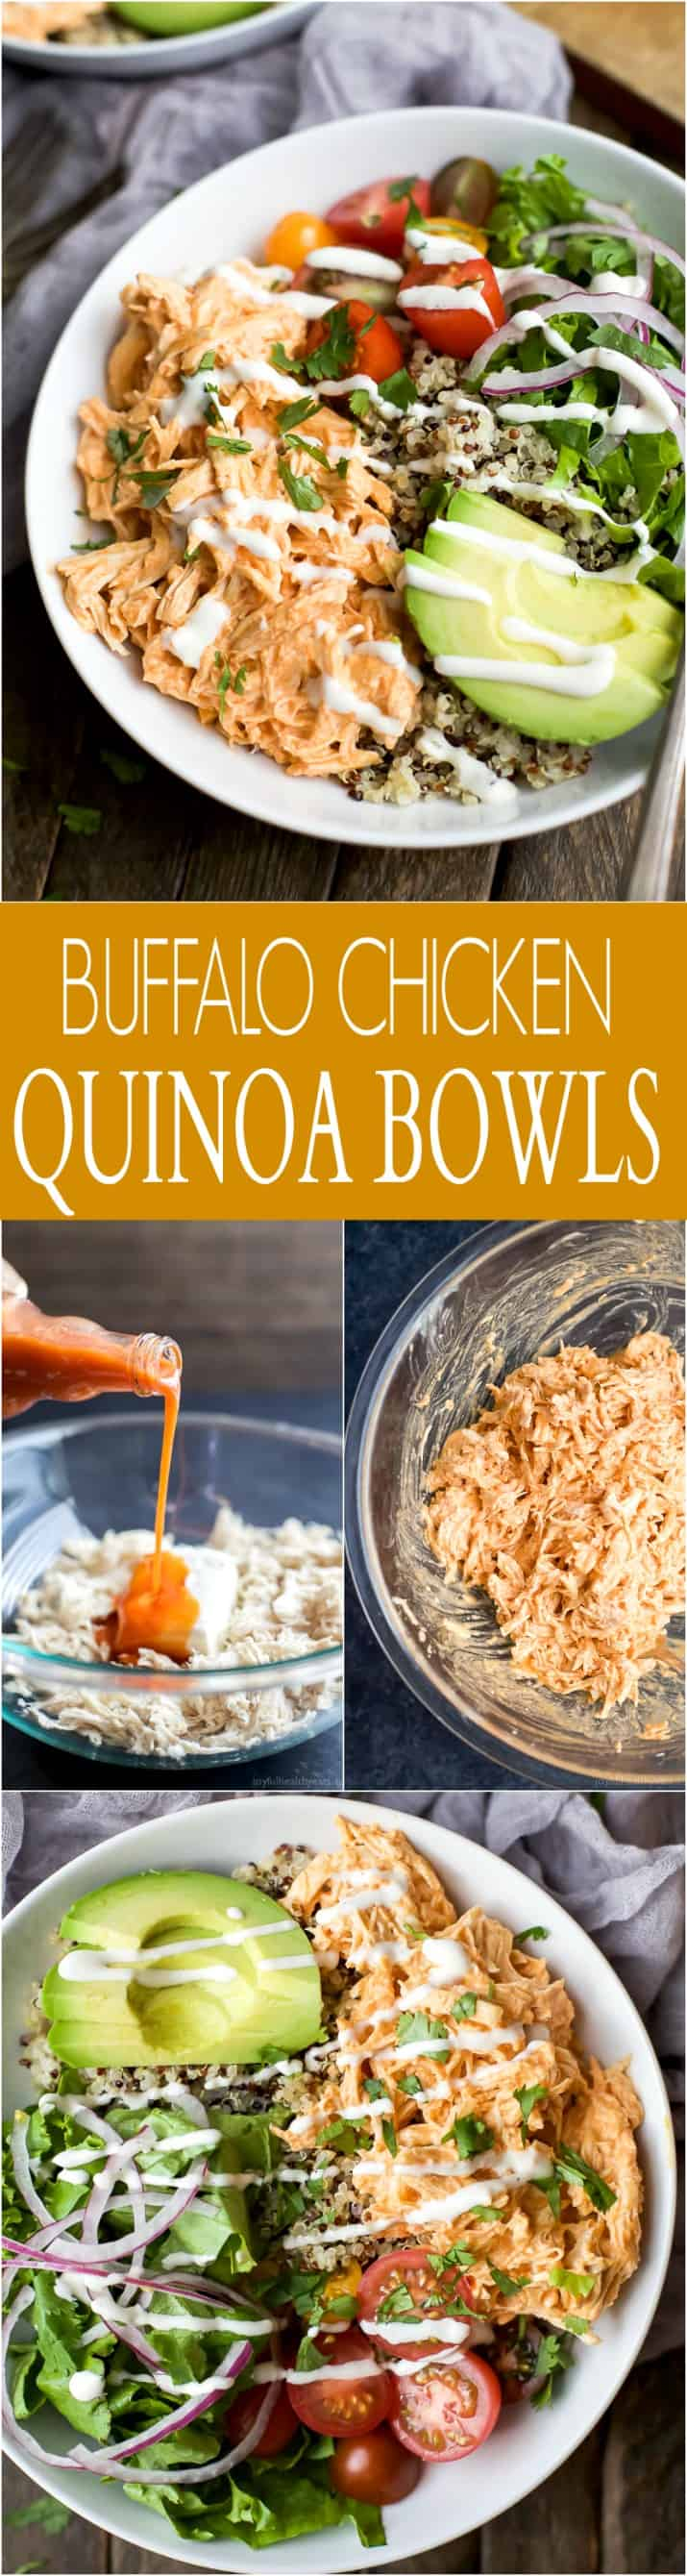 A collage of images of Buffalo Chicken Quinoa Bowls with recipe title text